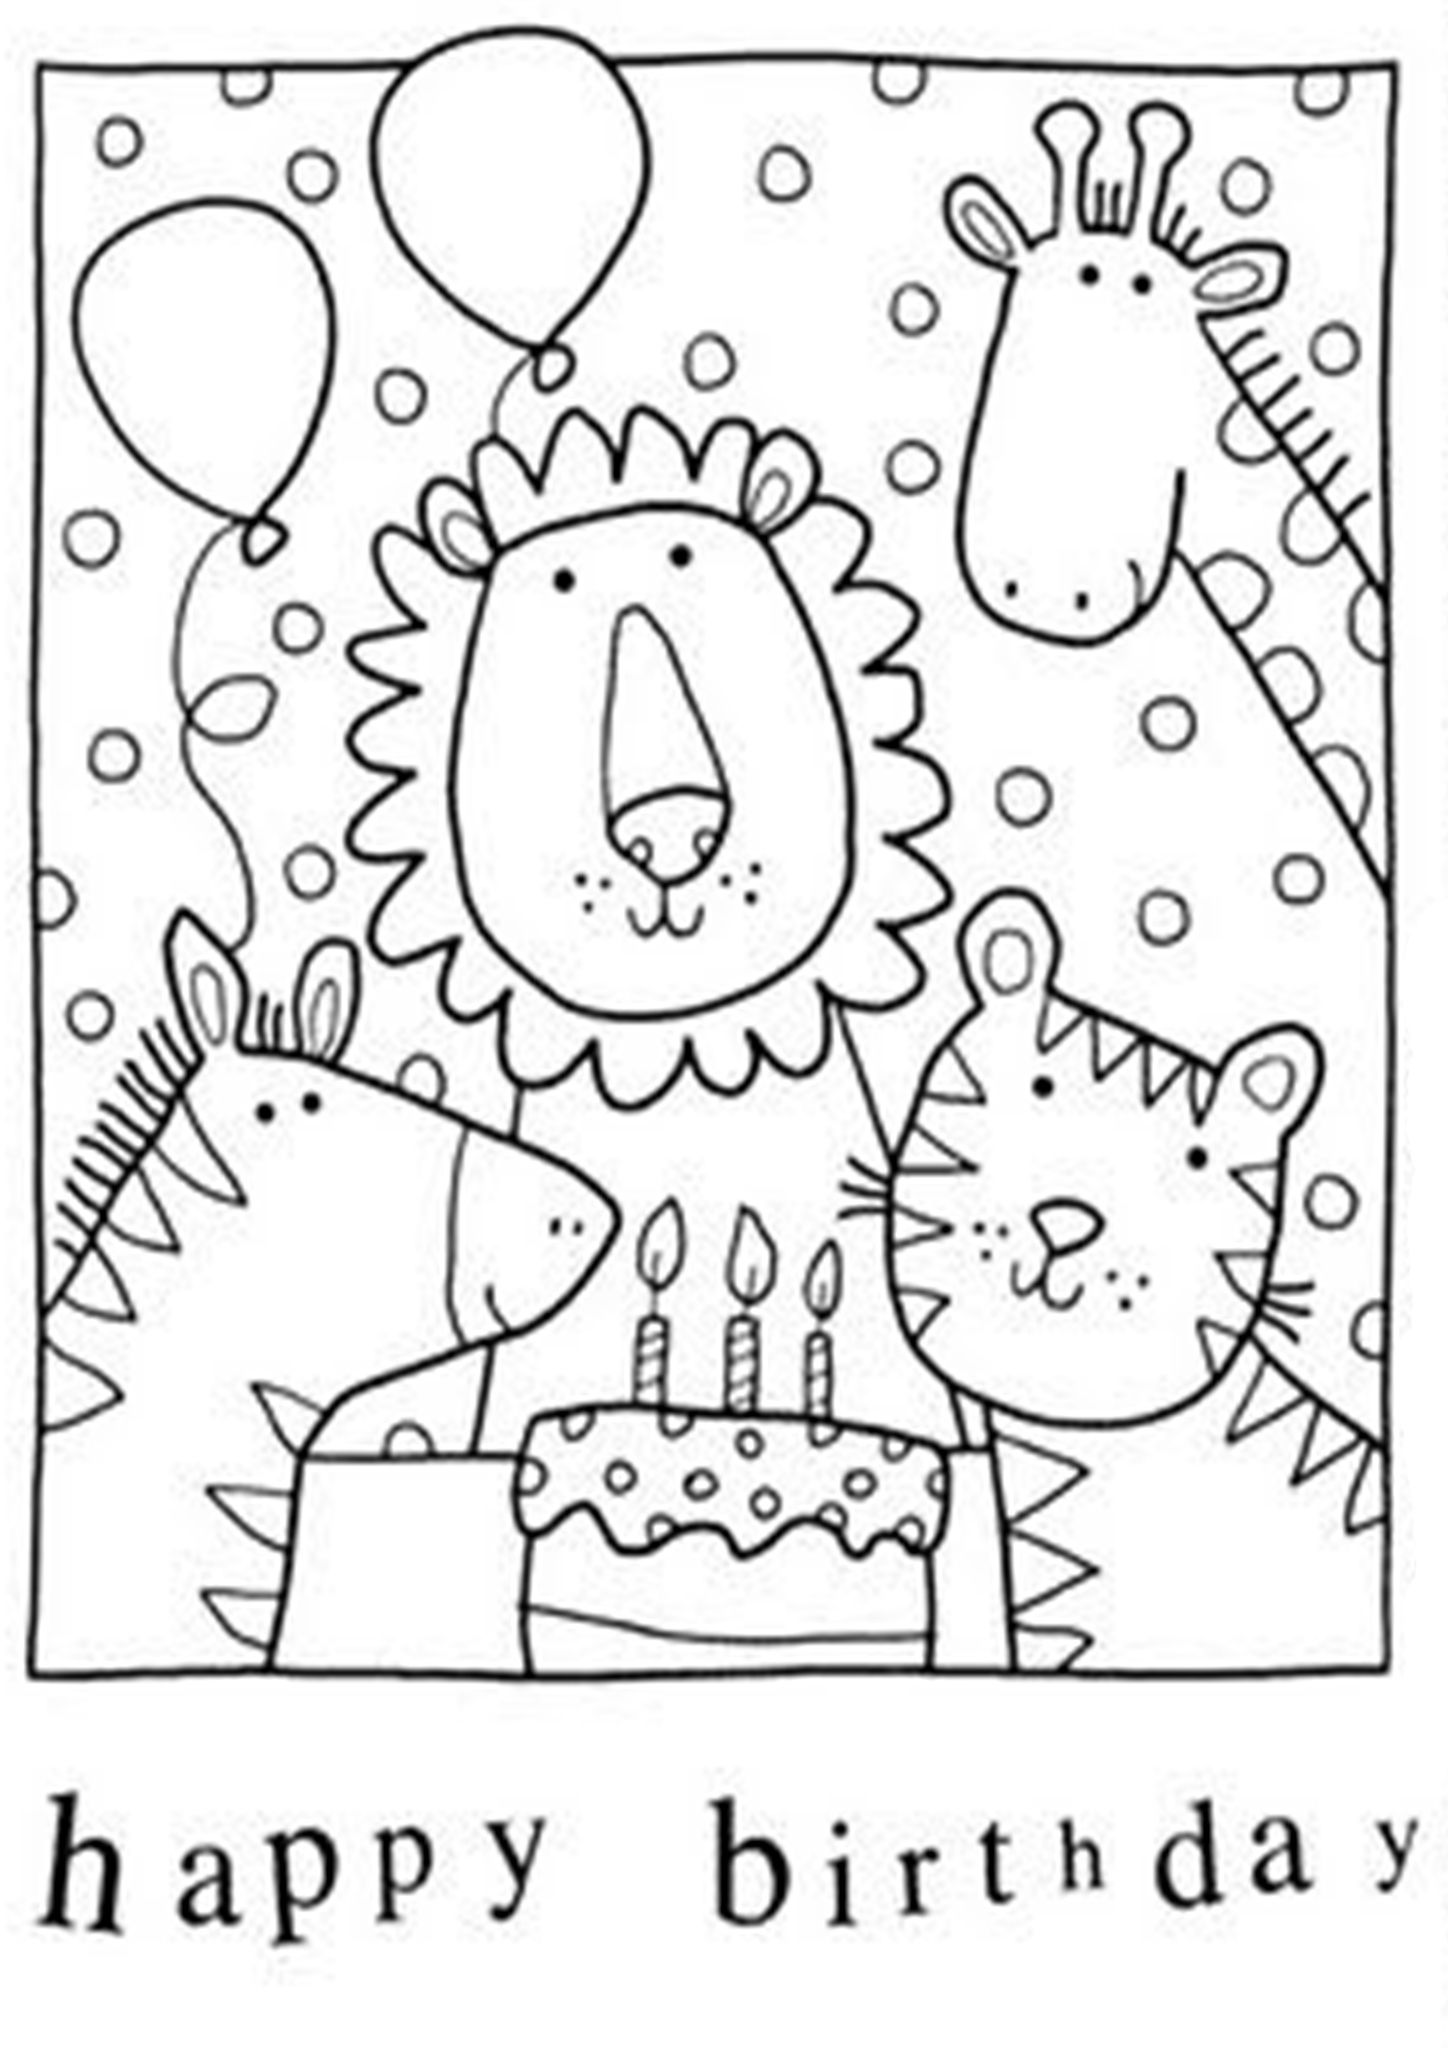 Free Easy To Print Happy Birthday Coloring Pages Happy Birthday Coloring Pages Birthday Coloring Pages Coloring For Kids